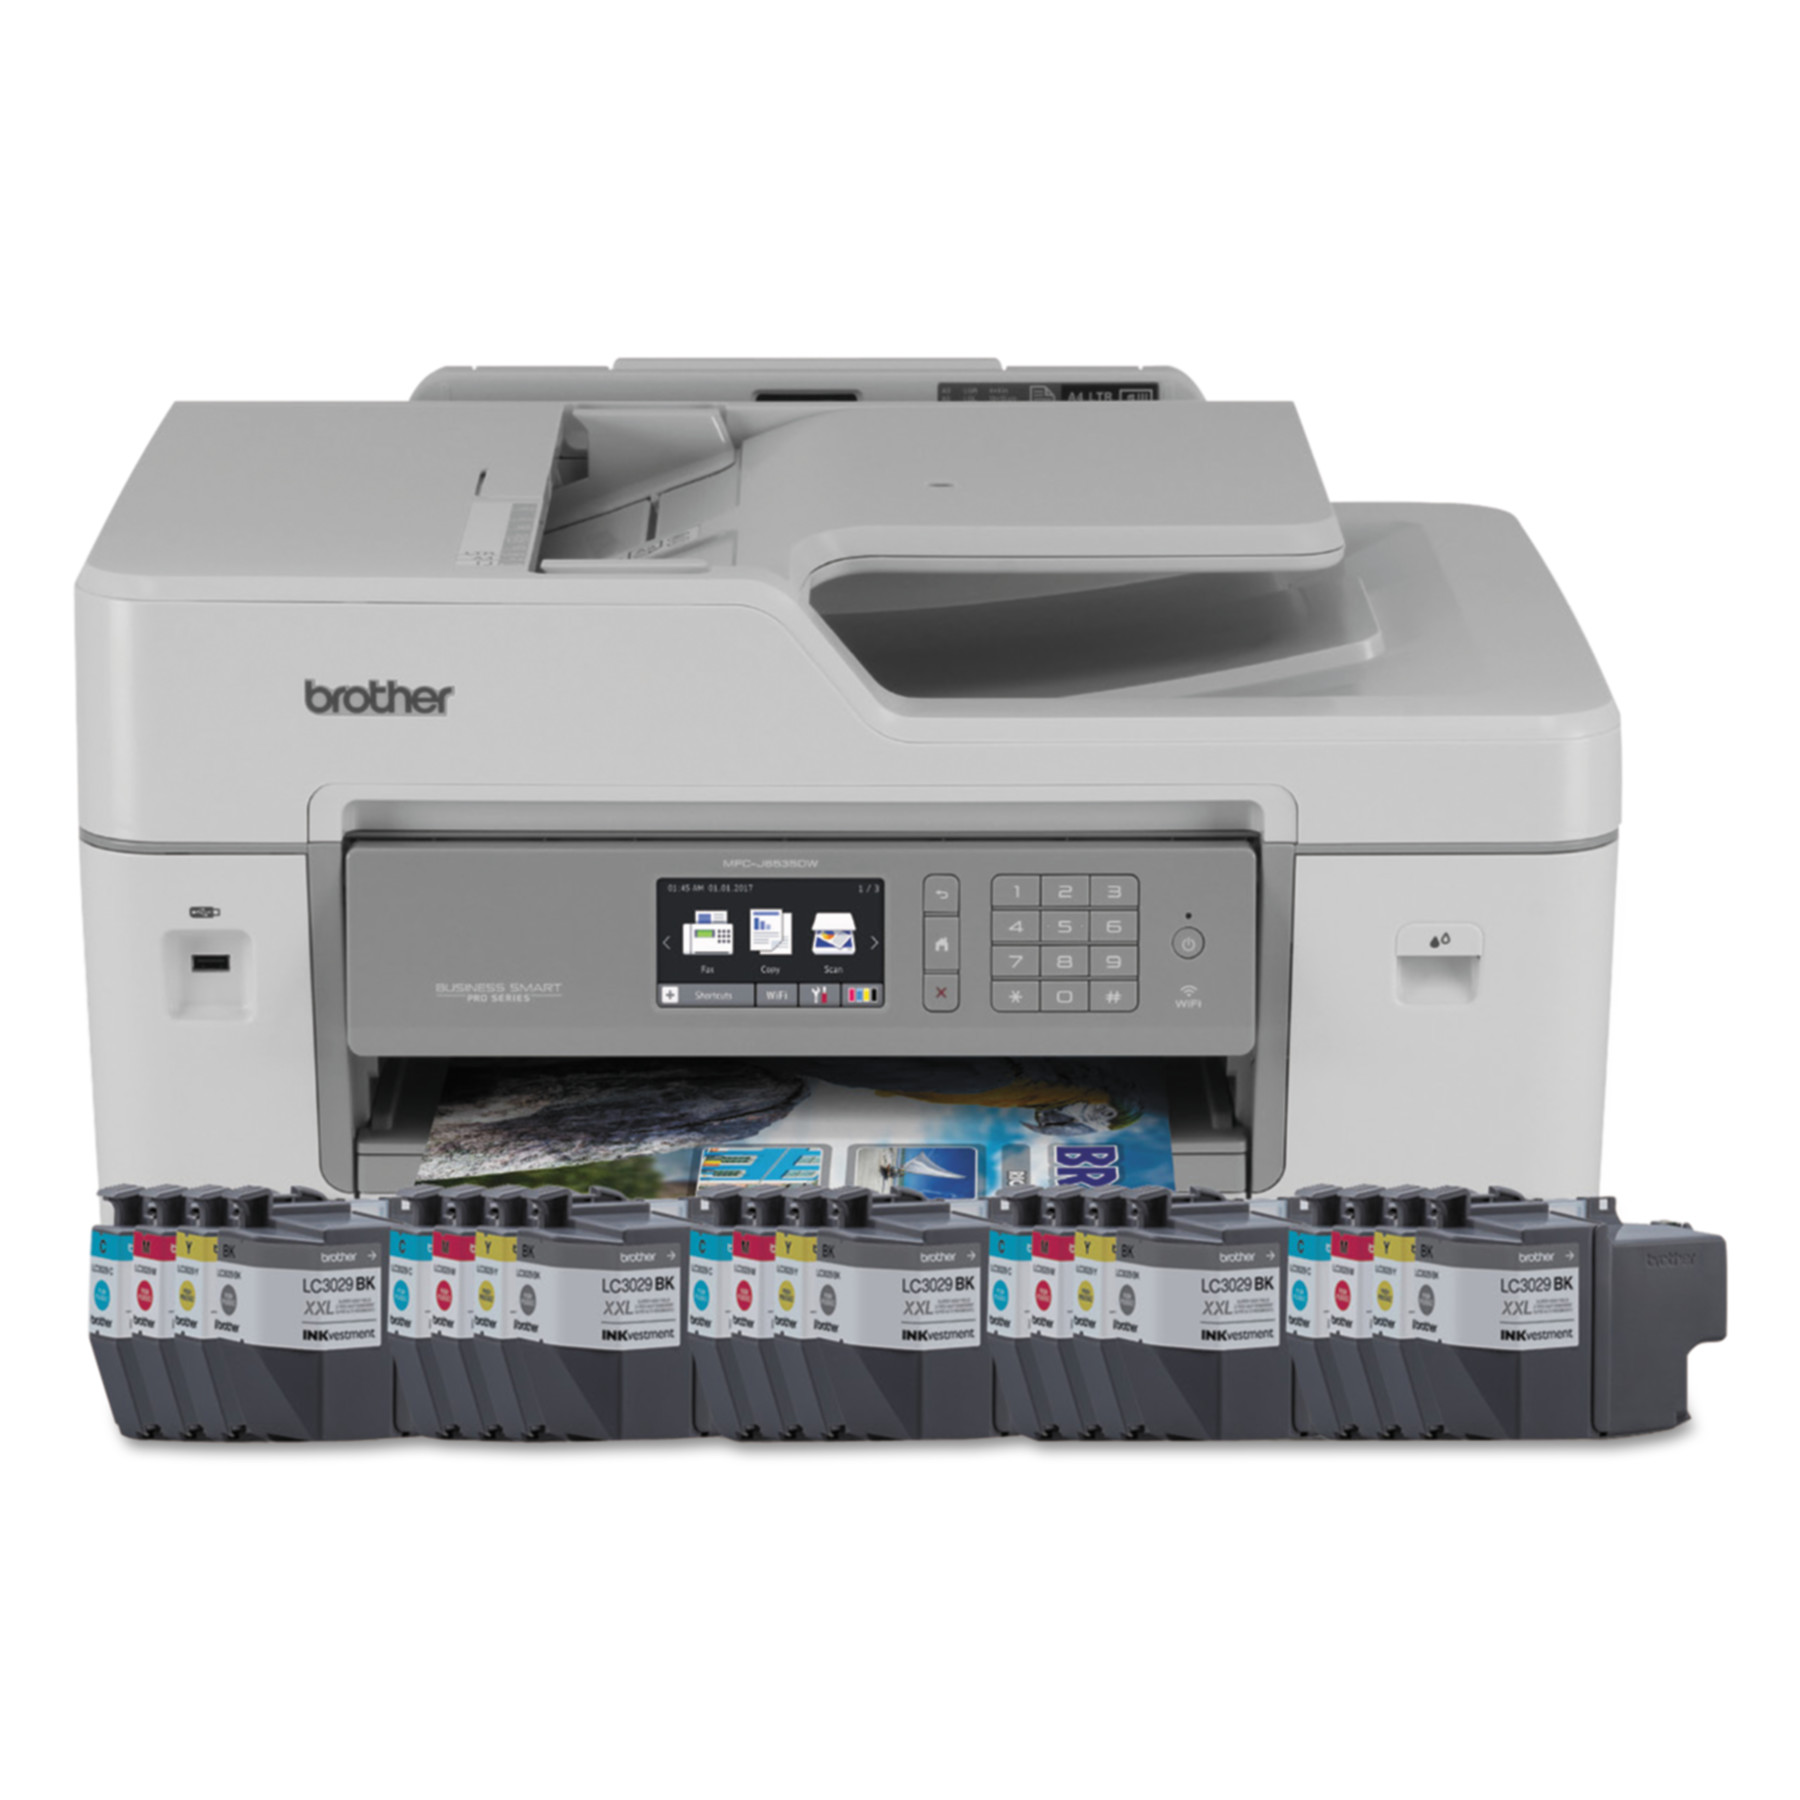 Brother MFC-J6535DWXL Business Smart Printer Pro, Copy; Fax; Print; Scan by Brother